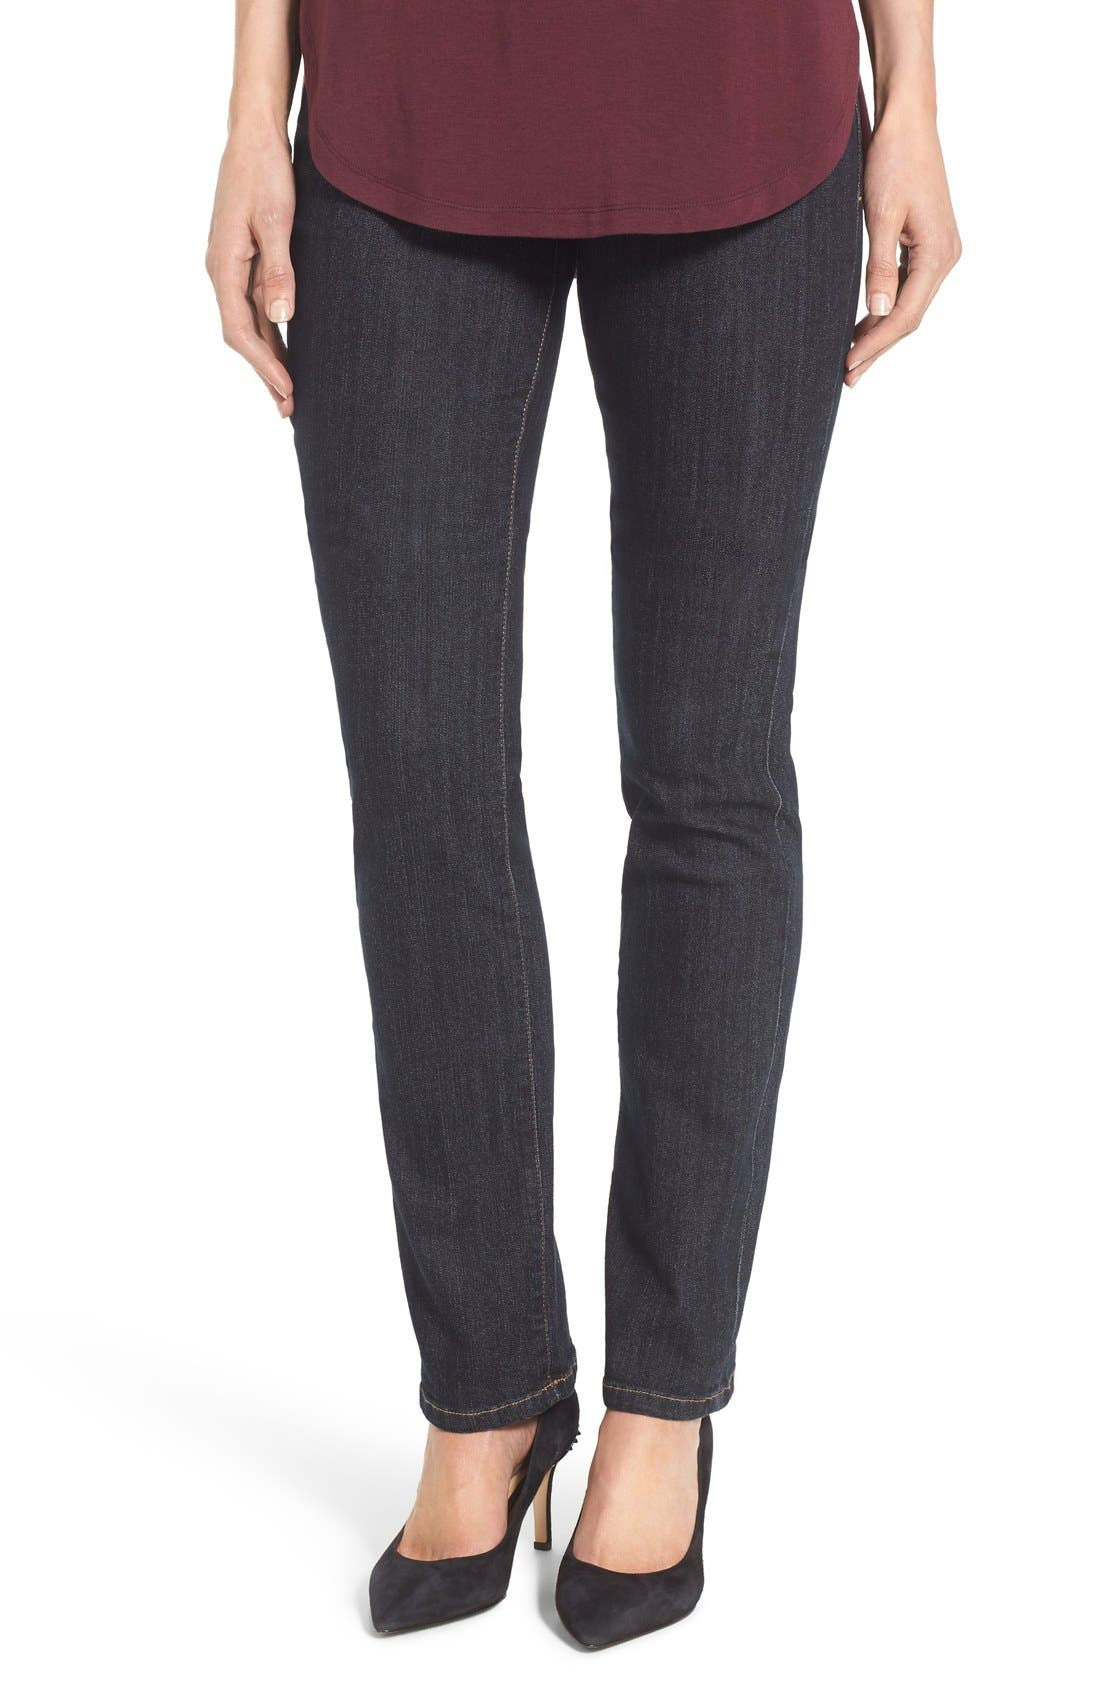 Alternate Image 1 Selected - Jag Jeans 'Peri' Pull-On Stretch Straight Leg Jeans (Late Night) (Regular & Petite) (Online Only)